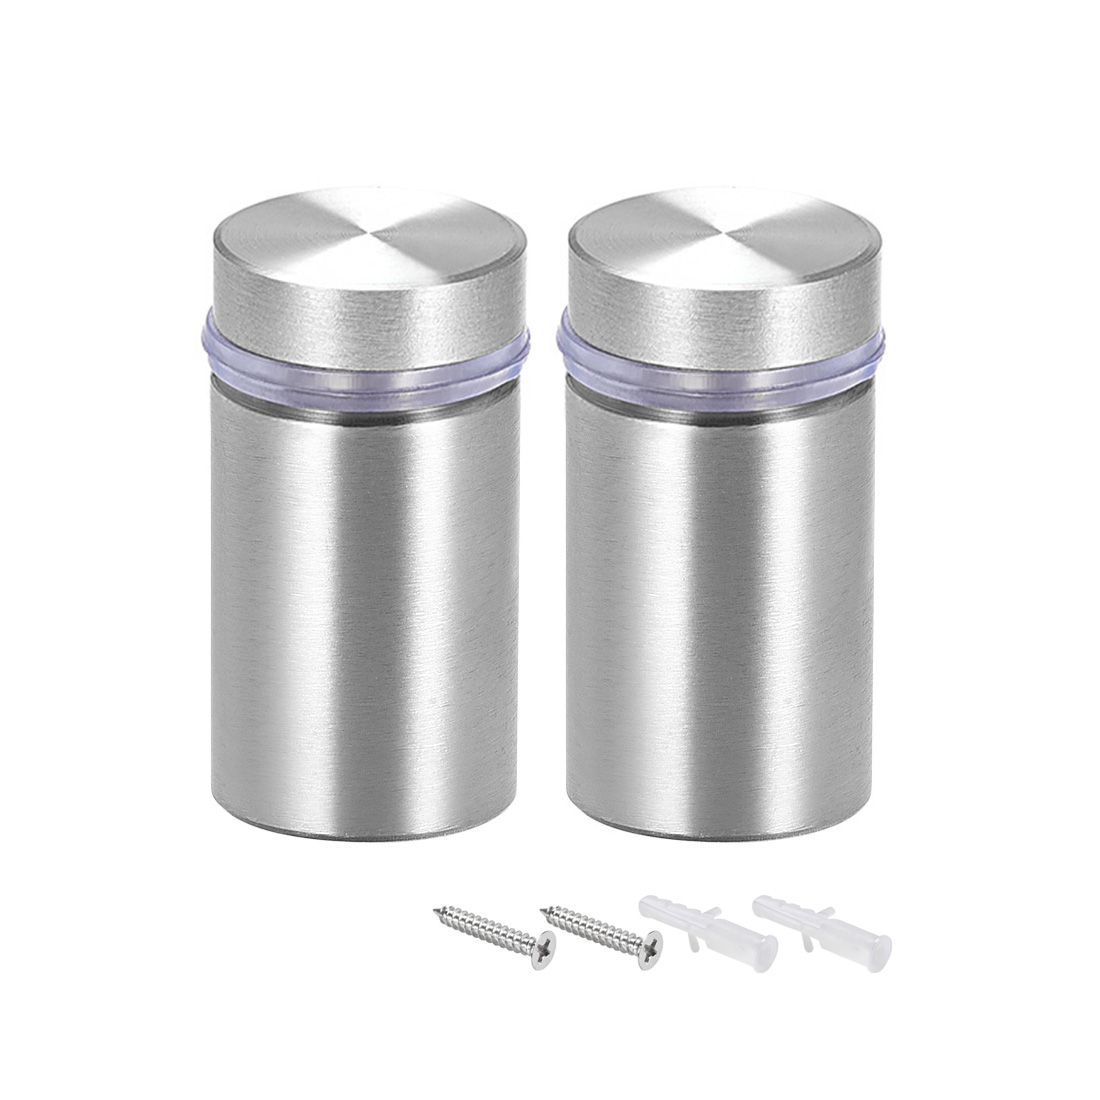 Glass Standoff Mount Solid Stainless Steel Wall Standoff Holder 25mmx43mm 2 Pcs